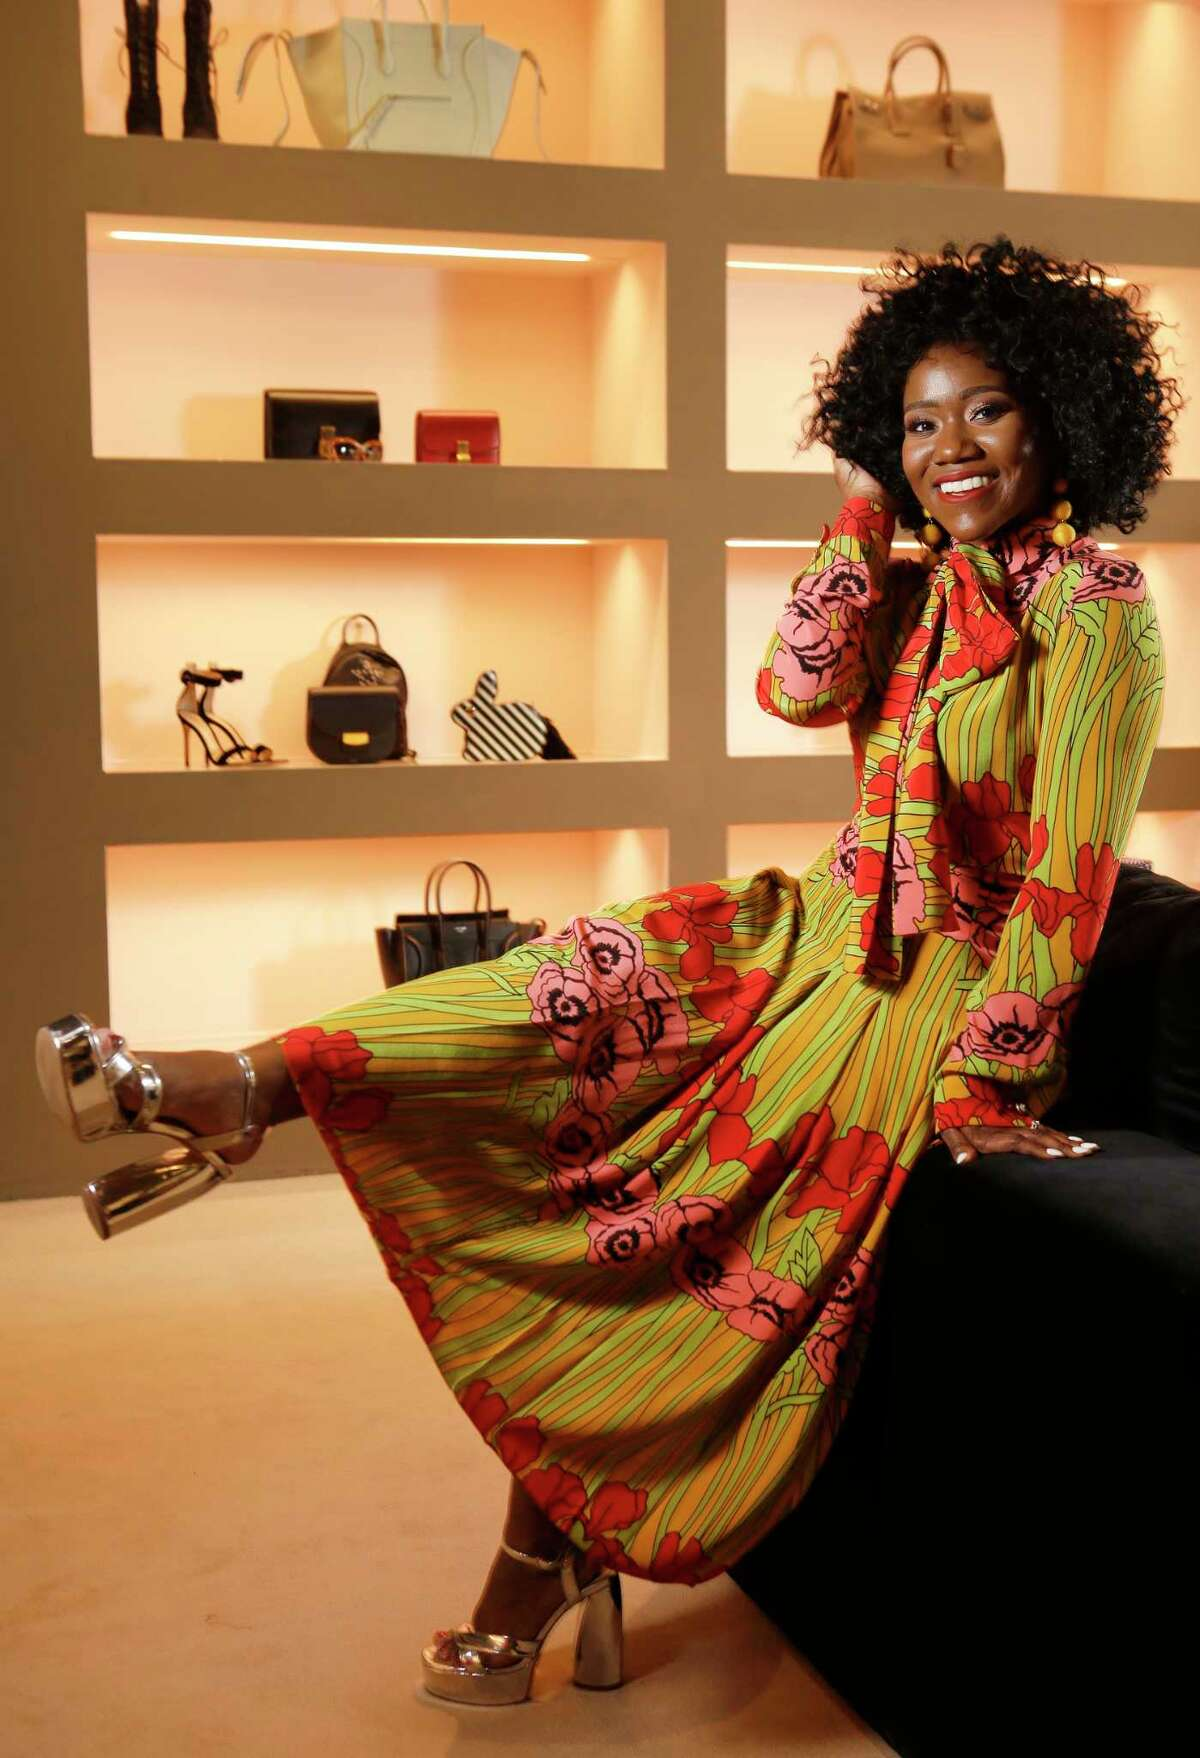 Fashion stylist Ashley Dunn poses at The Webster at the Galleria, 5045 Westheimer Rd., Tuesday, July 18, 2017, in Houston. ( Melissa Phillip / Houston Chronicle )